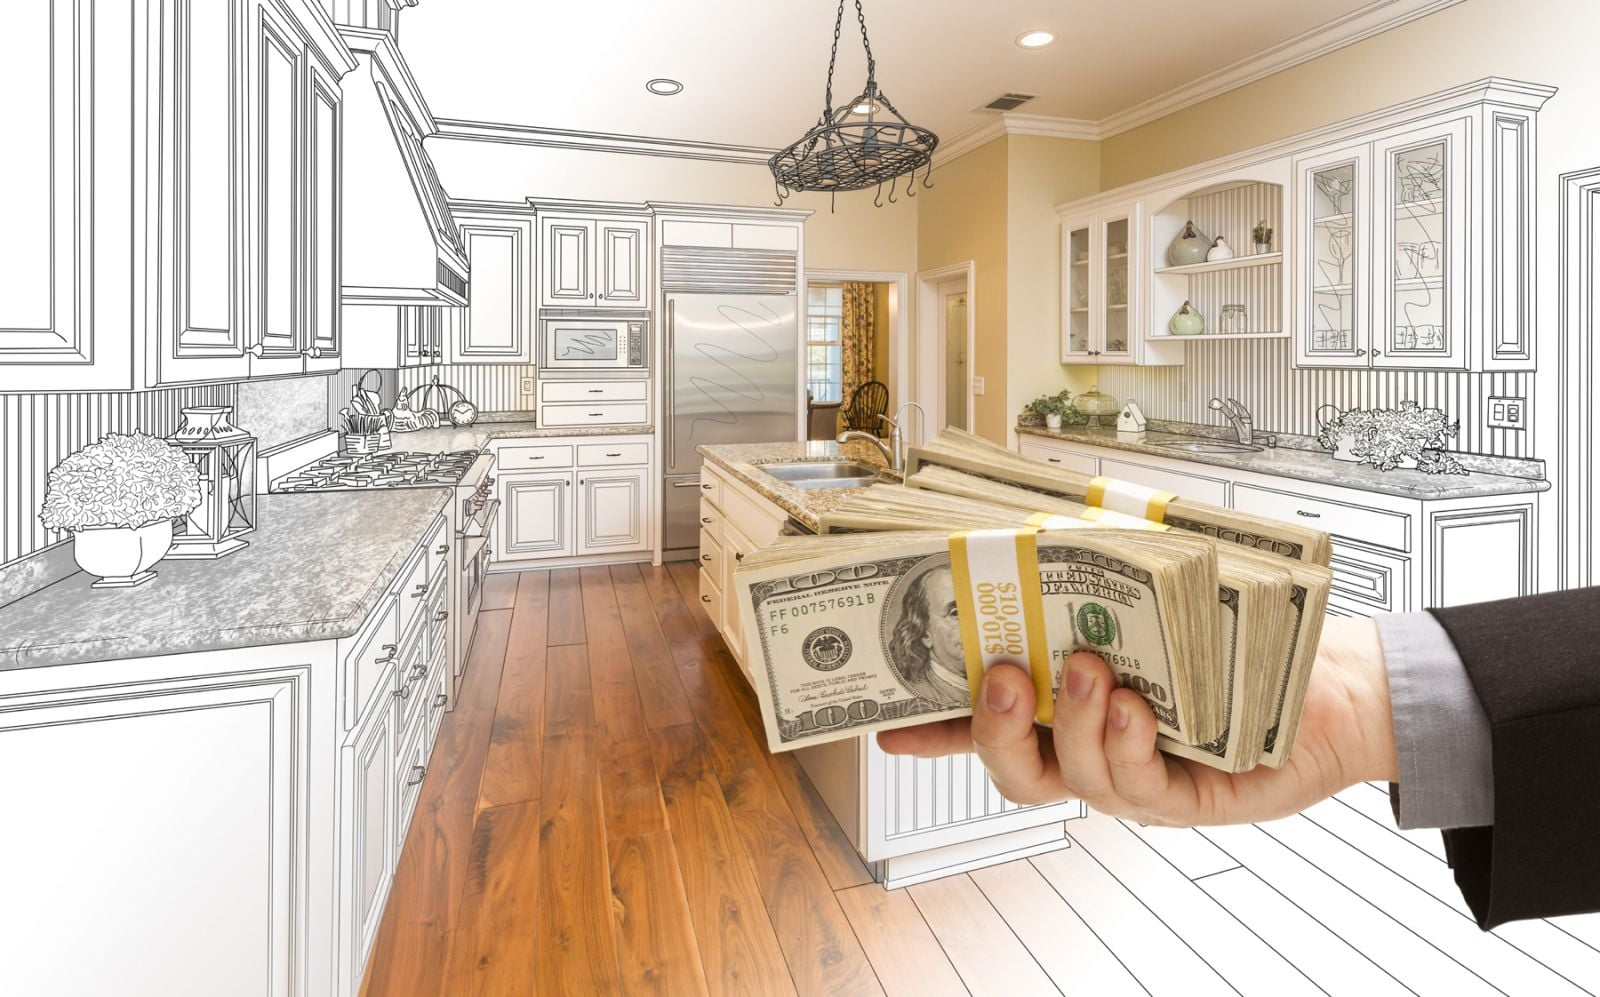 How much does it cost to remodel a kitchen high tech pacific builders New kitchen remodel cost